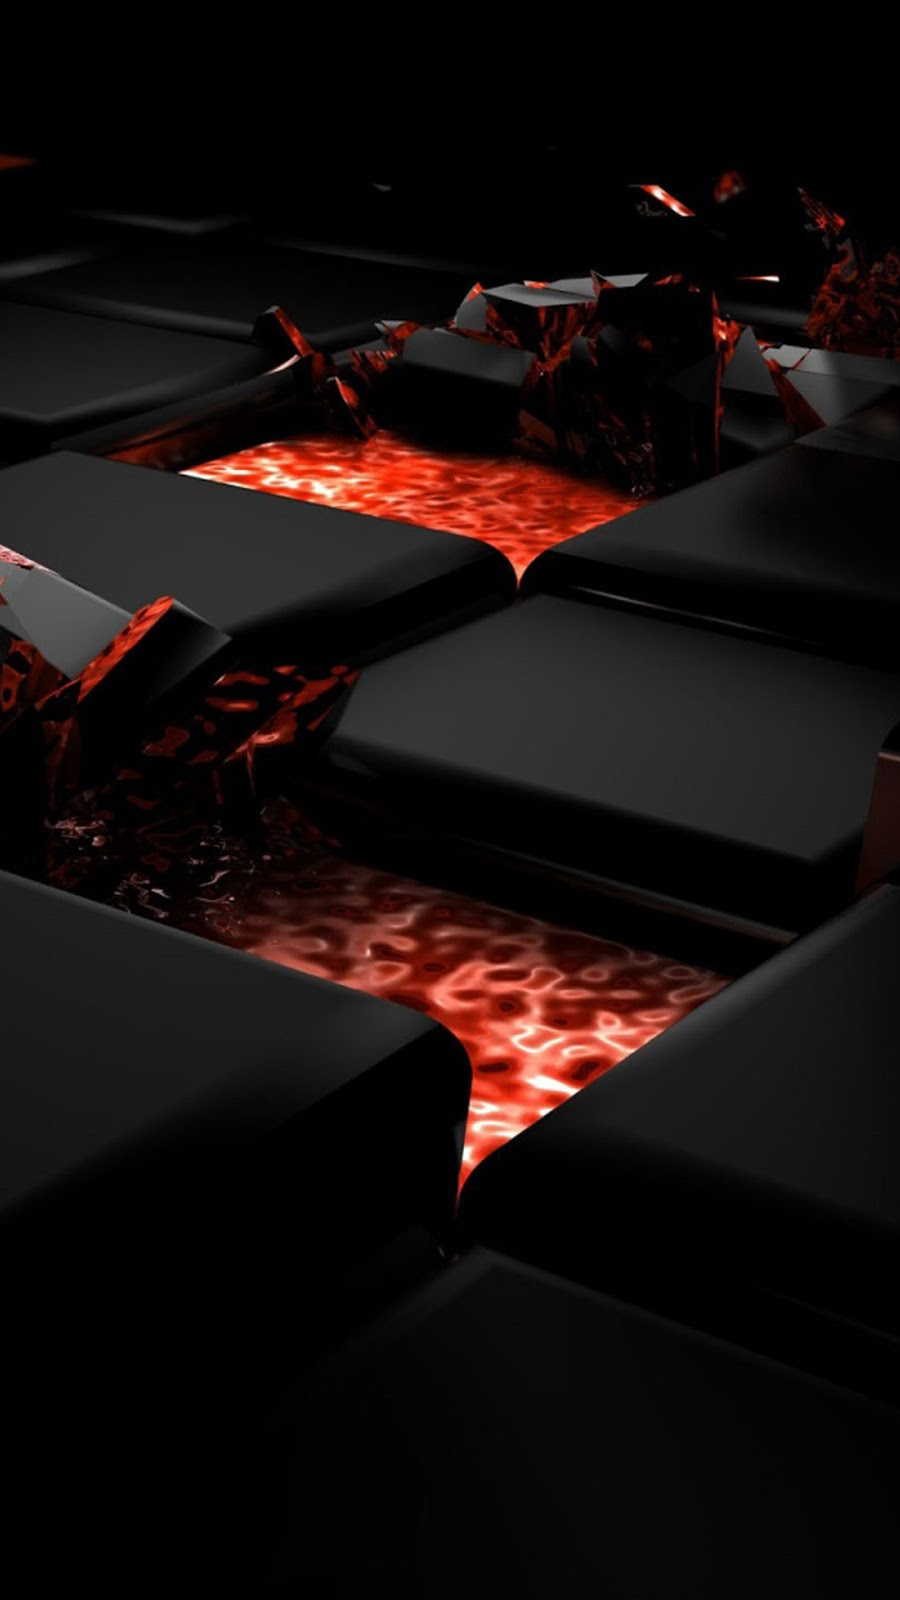 Red And Black 3D Creative Design HD IPhone 7 Plus Wallpaper